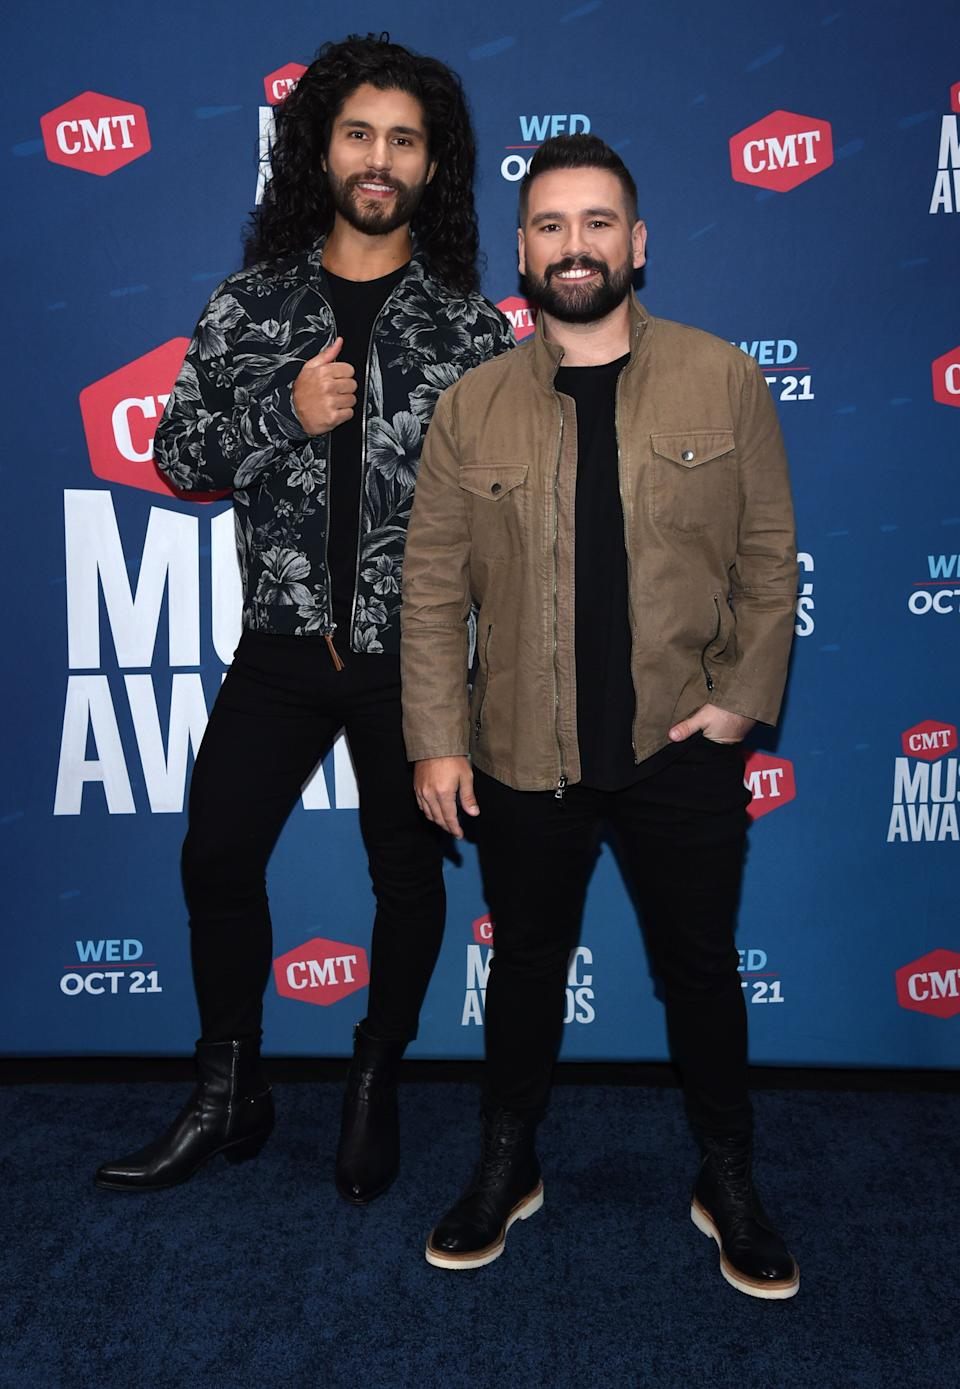 (Photo: John Shearer/CMT2020/Getty Images for CMT)